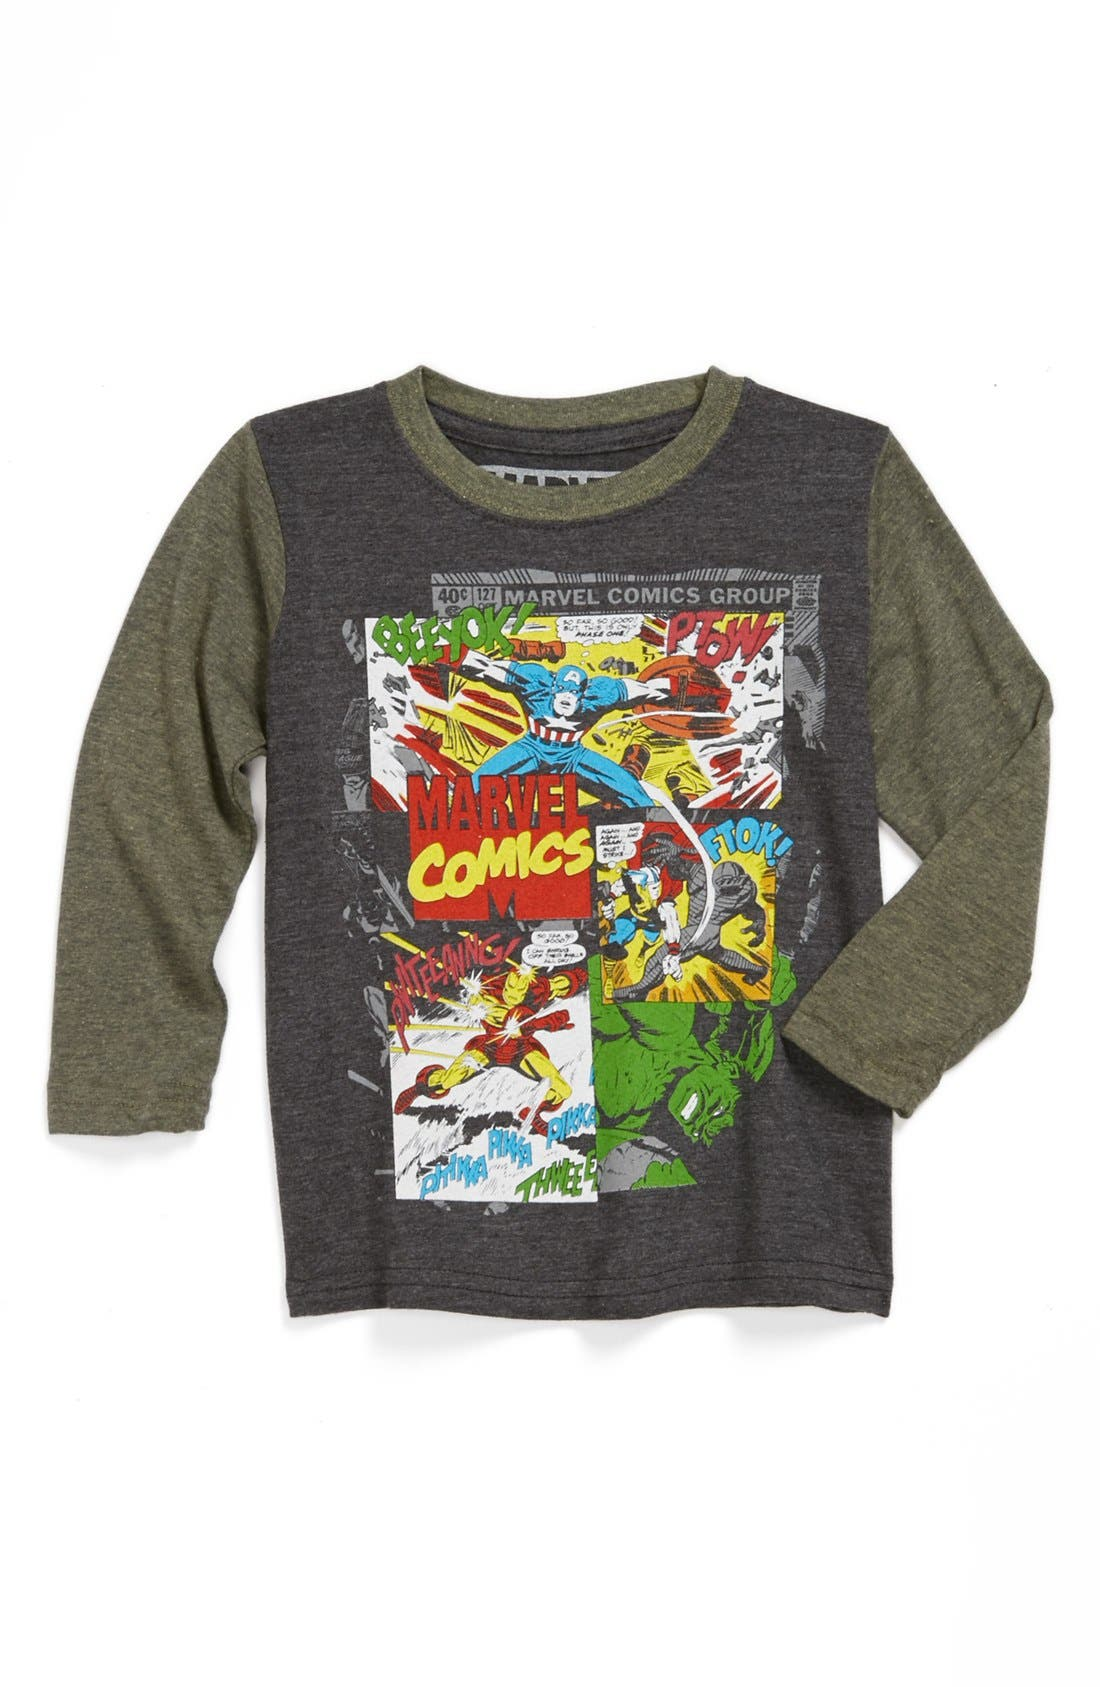 Alternate Image 1 Selected - Jem 'Marvel Comics™ Group' Long Sleeve T-Shirt (Toddler Boys)